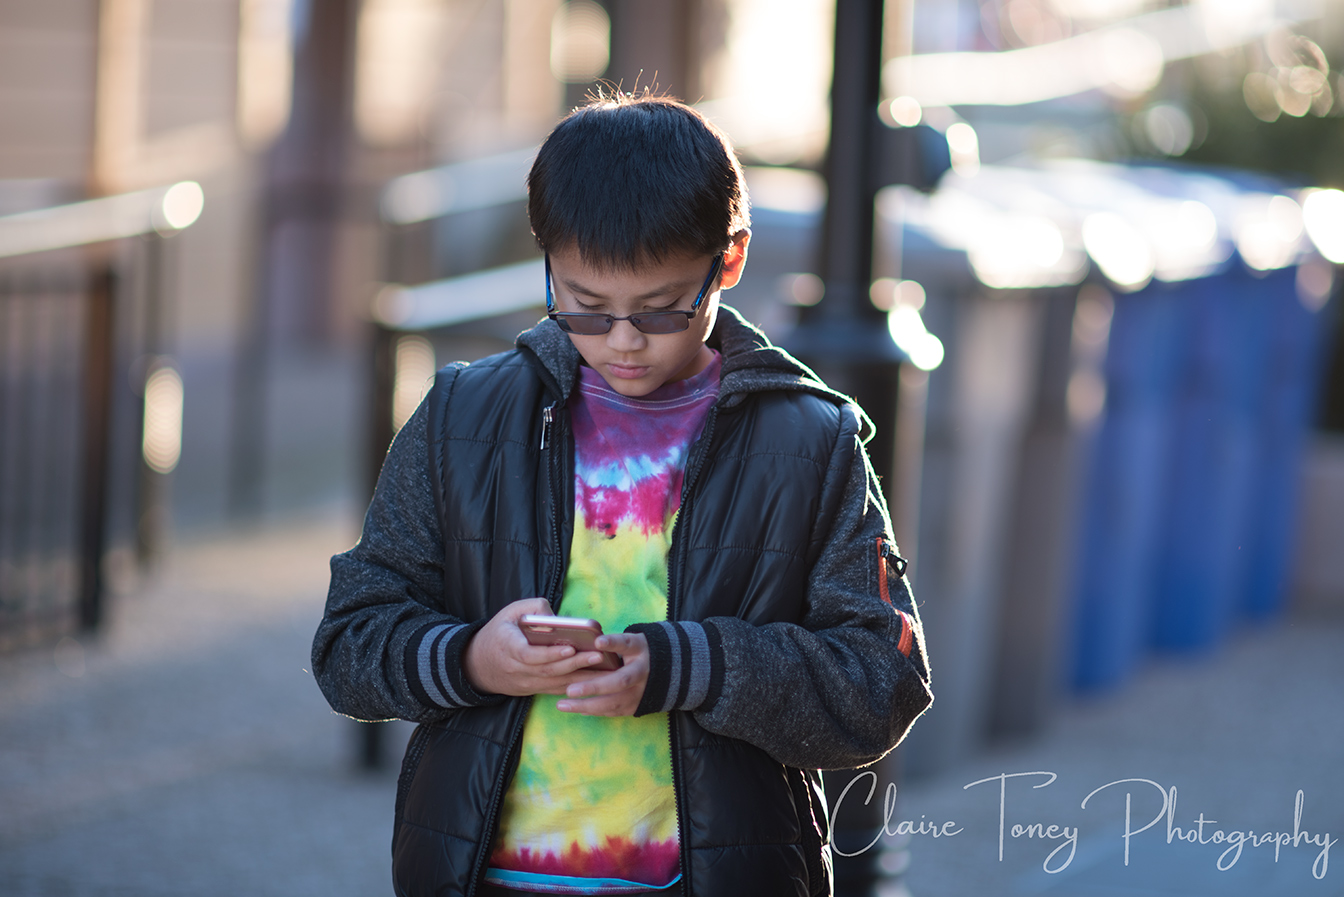 well exposed photo of boy holding a phone